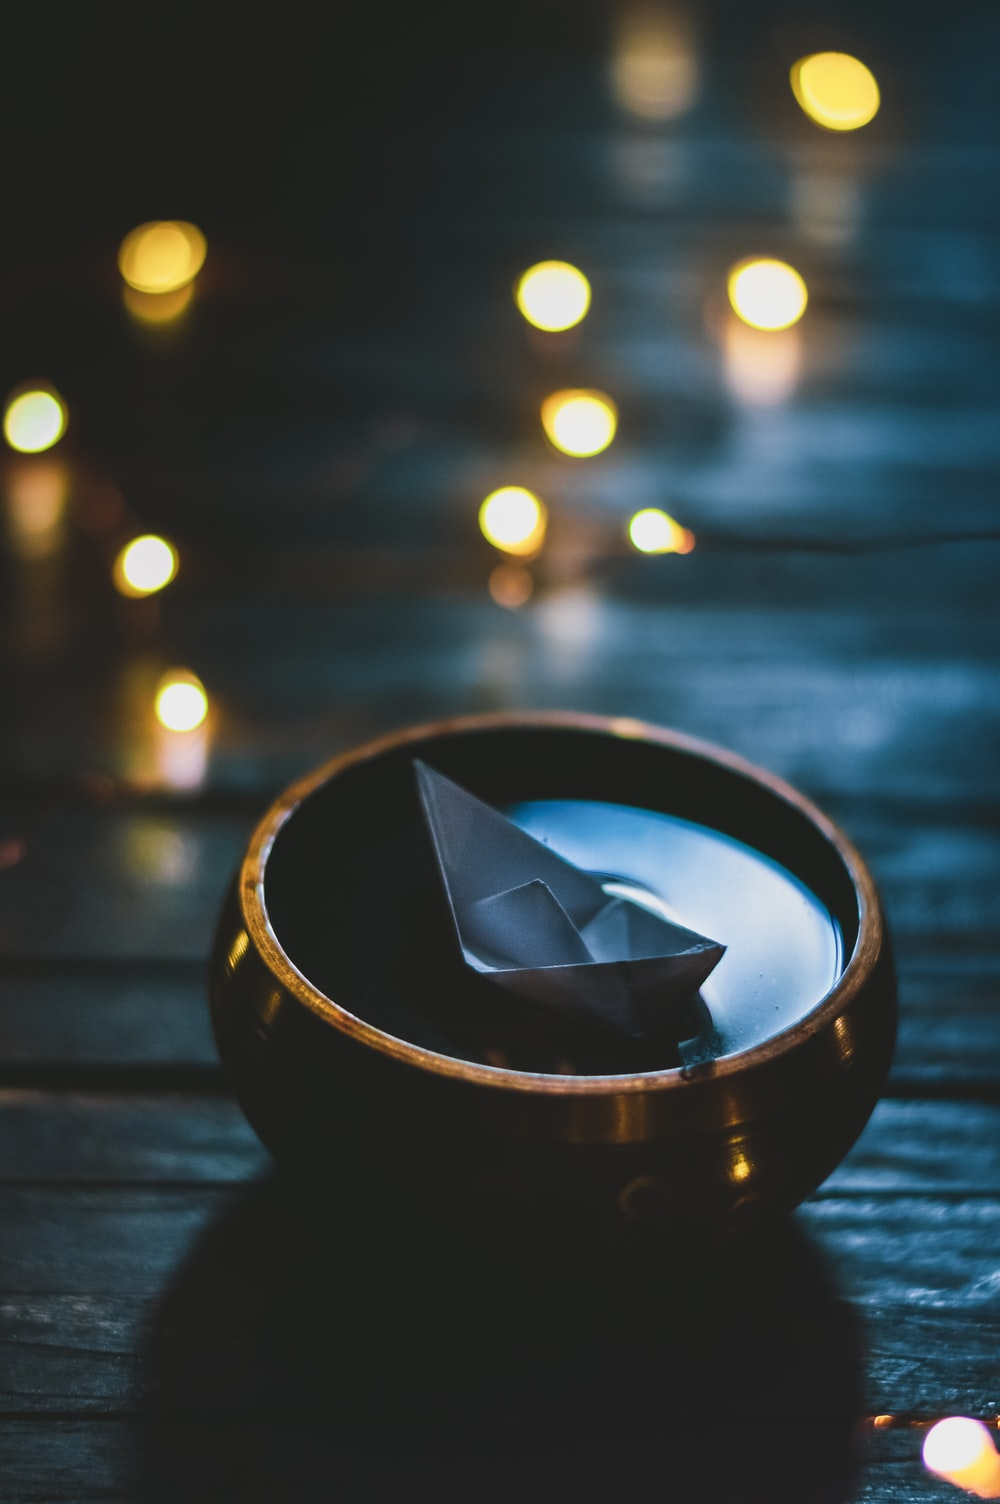 selective focus photograph of paper boat on bowl